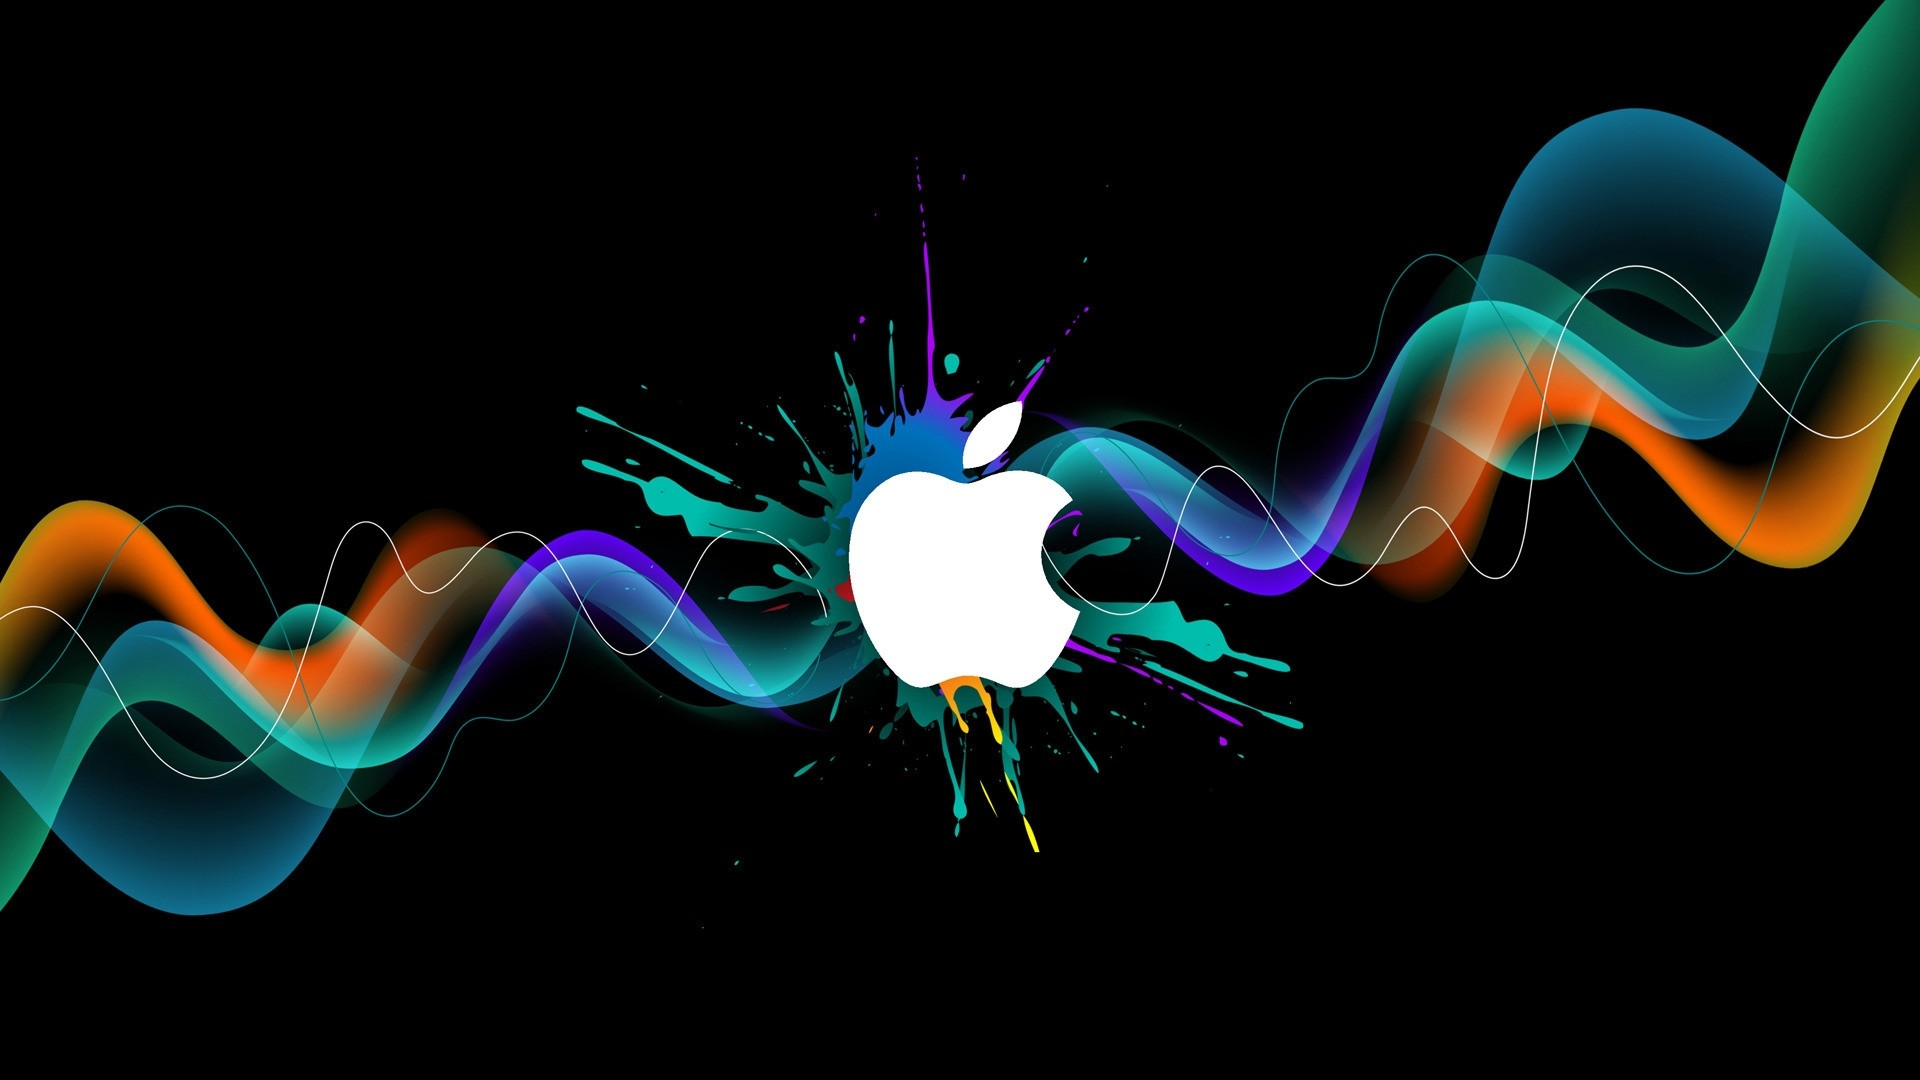 Wallpapers For Mac Hd: HD Apple Wallpapers 1080p (70+ Images